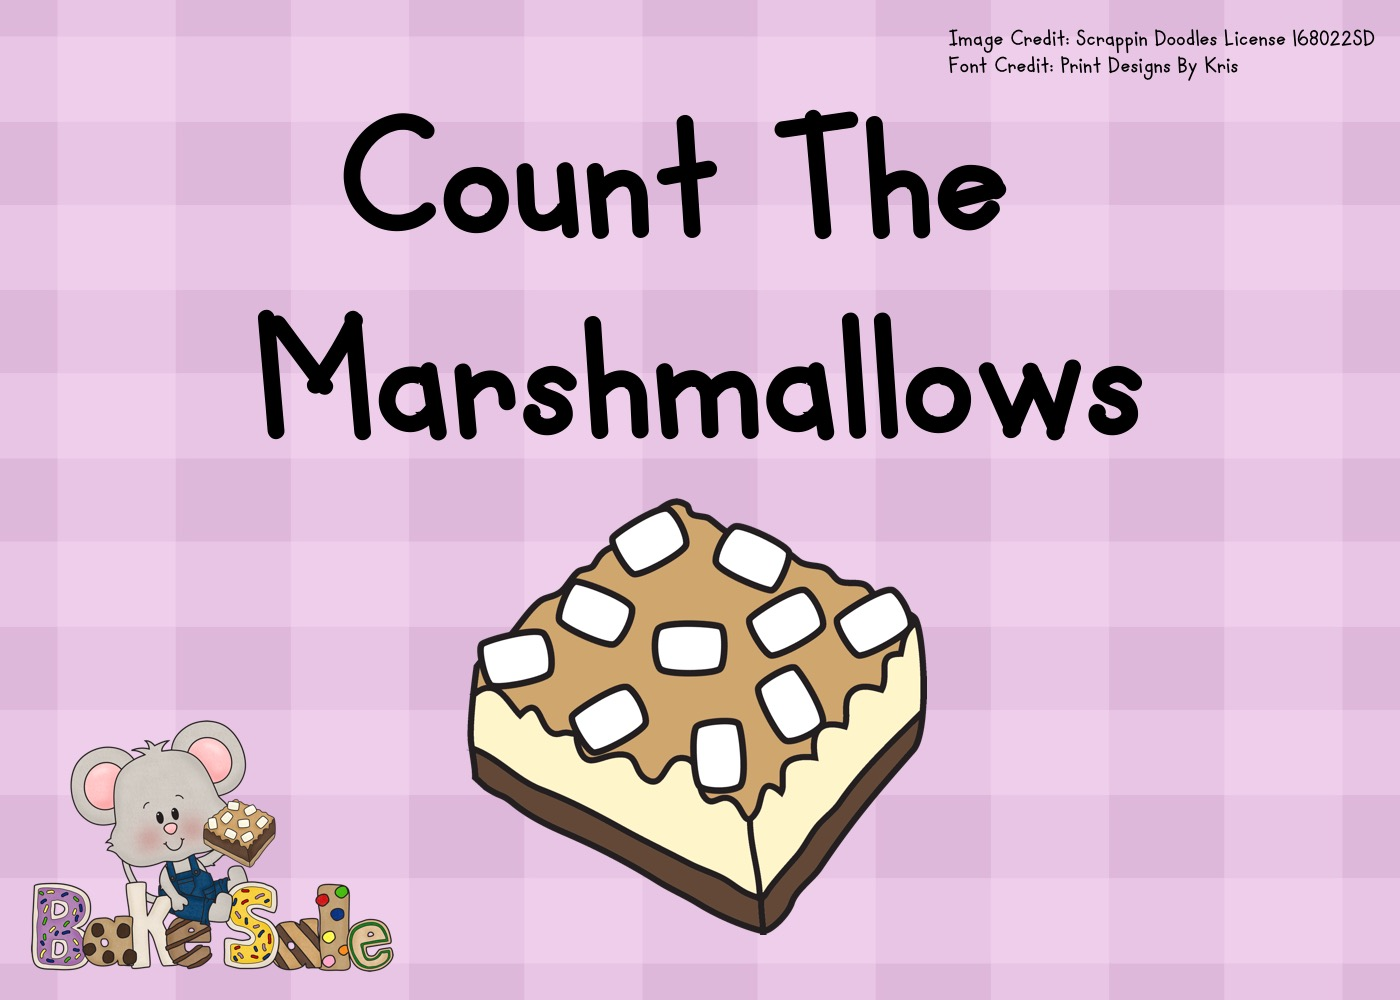 Fun Marshmallow Printables for Preschool and Kindergarten   Food Themed Counting Games   Hands On Math Homeschool Activities   Kids Classroom Center Ideas and Worksheets #FreePrintableWorksheetsForKids #counting #food #marshmallows #clipcards